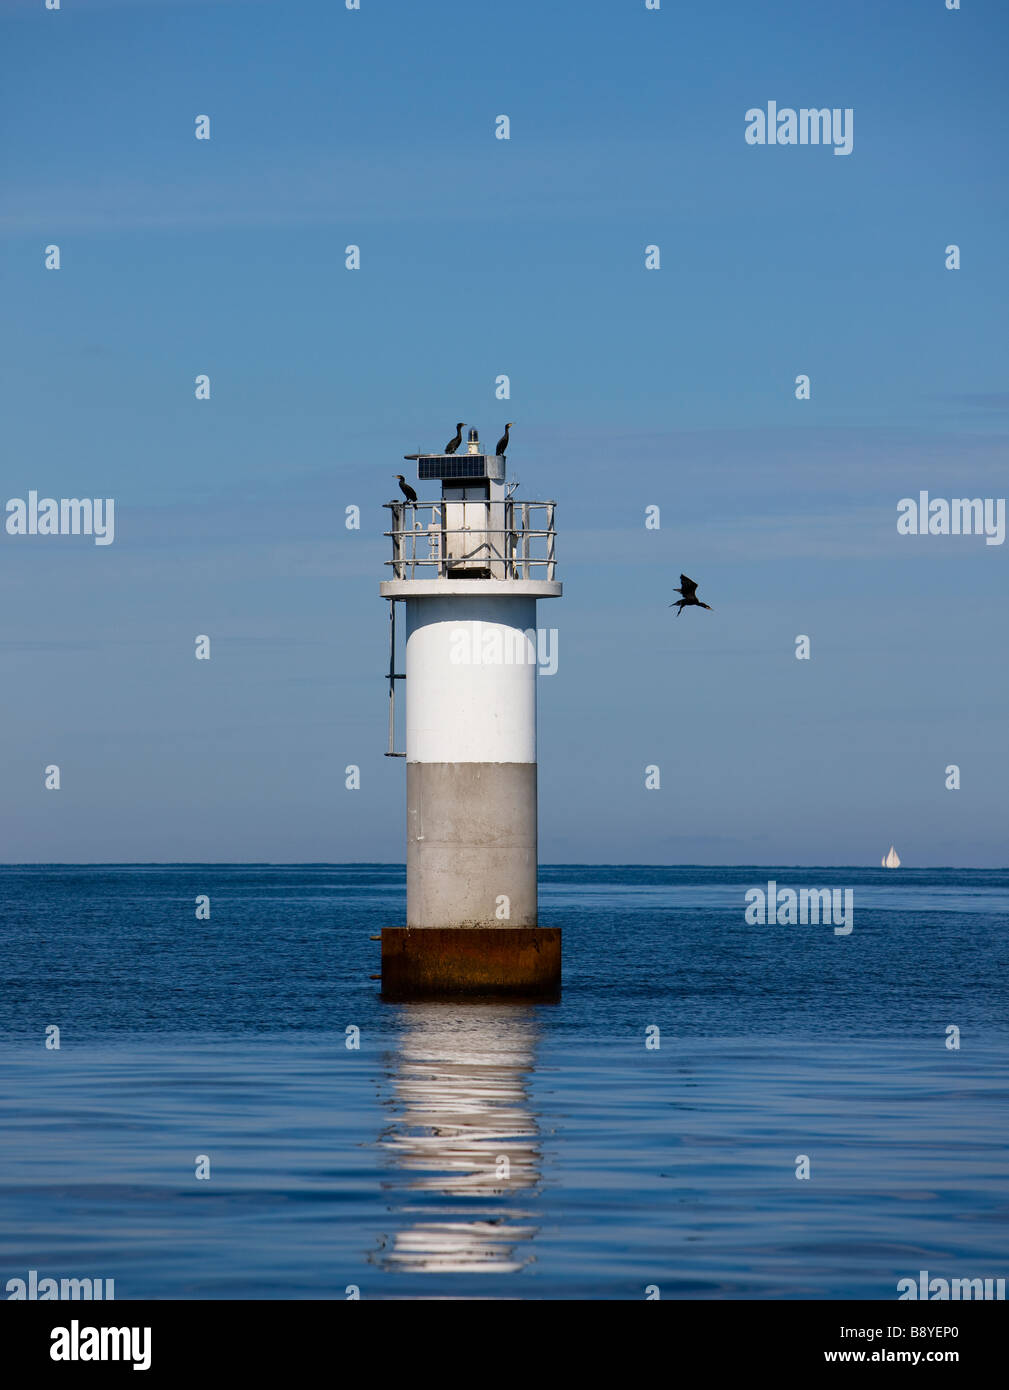 A lighthouse and a cormorant Stockholm archipelago Sweden. - Stock Image